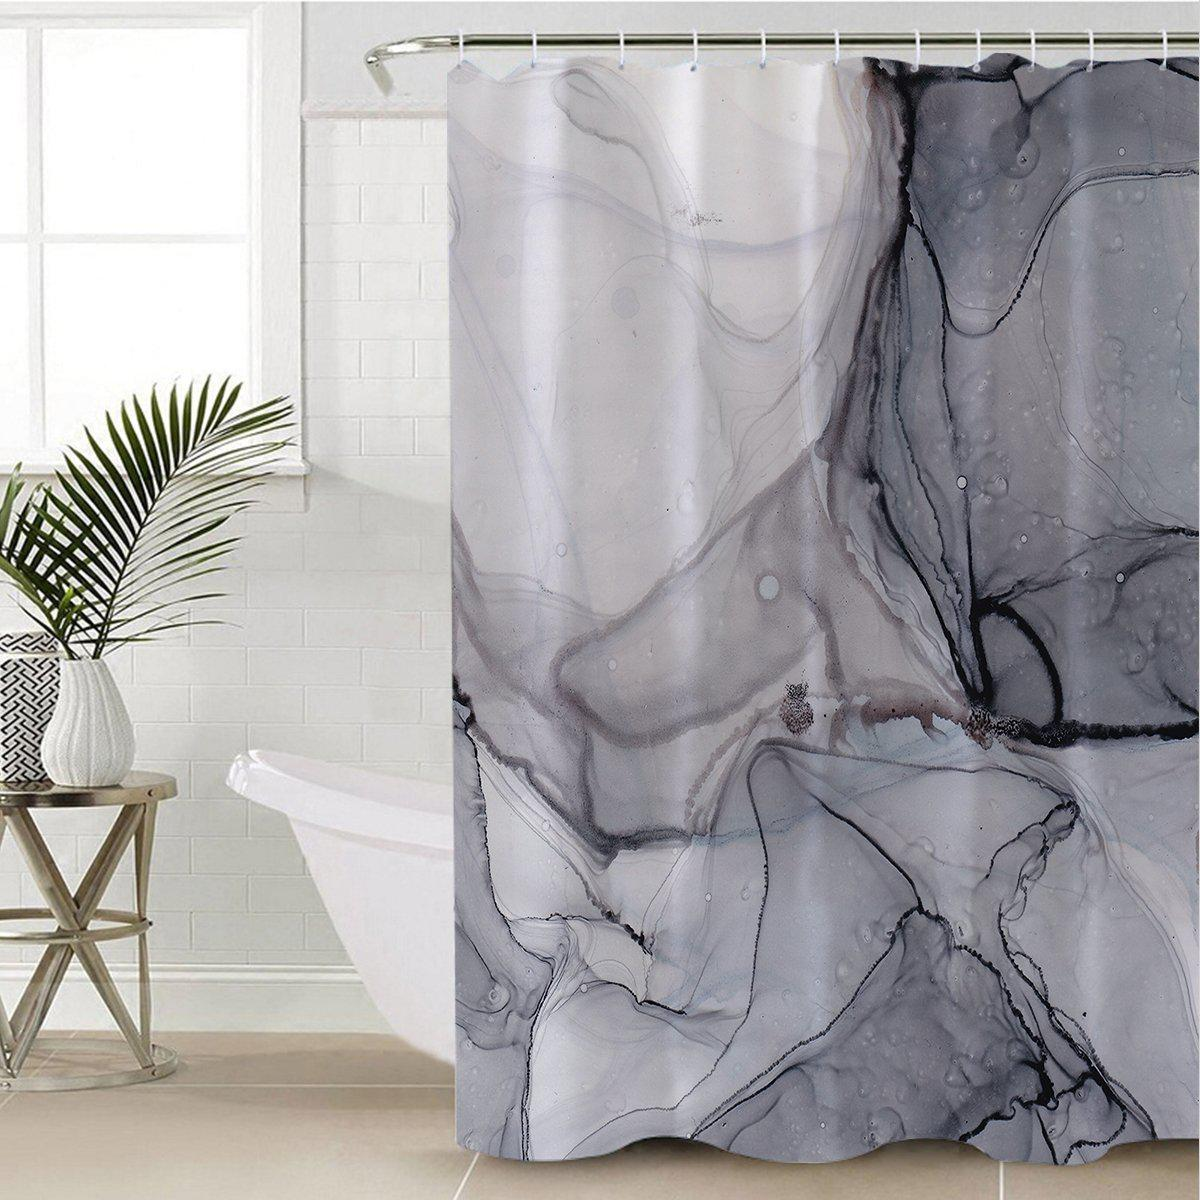 Playa Pavones Shower Curtain